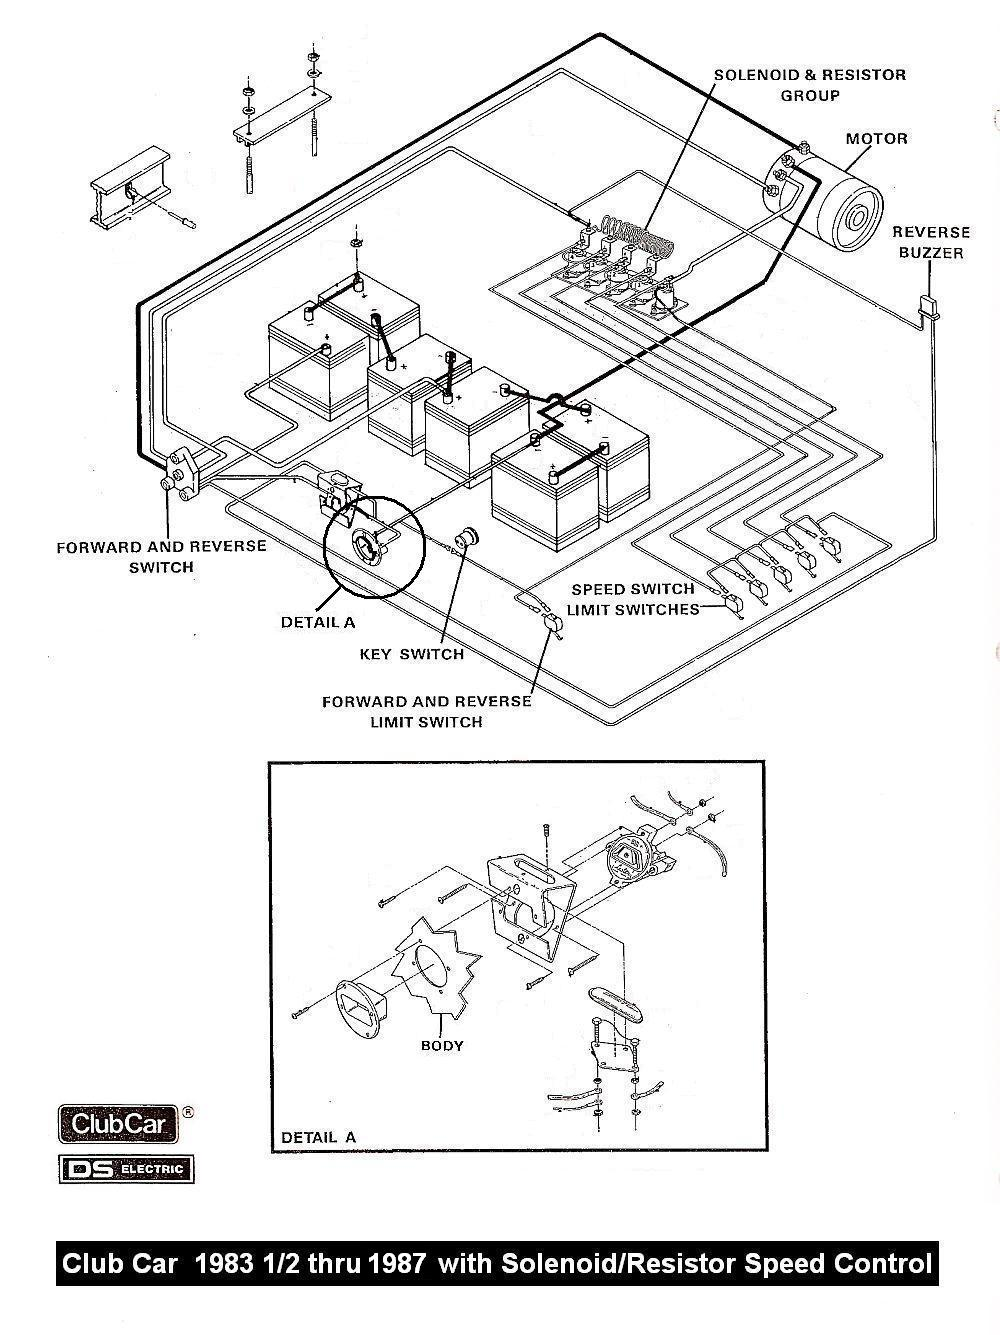 Wiring Diagram For 1986 Club Car Golf Cart